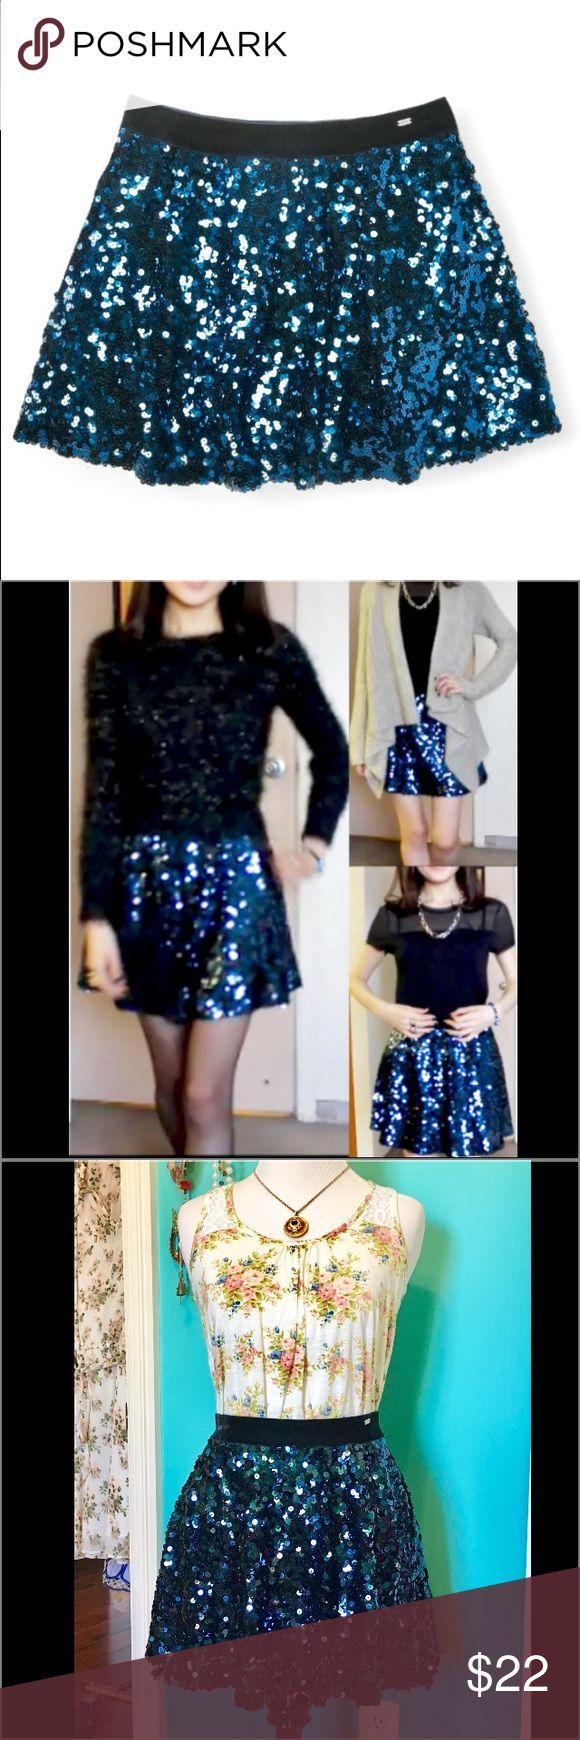 "✨Forever Blue Sequin Skater Mini Skirt✨ Adorable Little Skater Style Mini Skirt in Gorgeous Blue Sequins! Super Fun item to any Closet! Black ""Velvet"" Elastic waist- Easy to Wear. Fully Lined. There are 2 areas where the Hem is no longer intact, It's not really noticeable on, and it can be easily fixed with a small amount of stitching~ I personally don't want to do it~ Hence my reason for selling it. See Last pic (#7). Otherwise it Looks Amazing!!   Waist 13.5- 14 inches. Length 14 inches…"